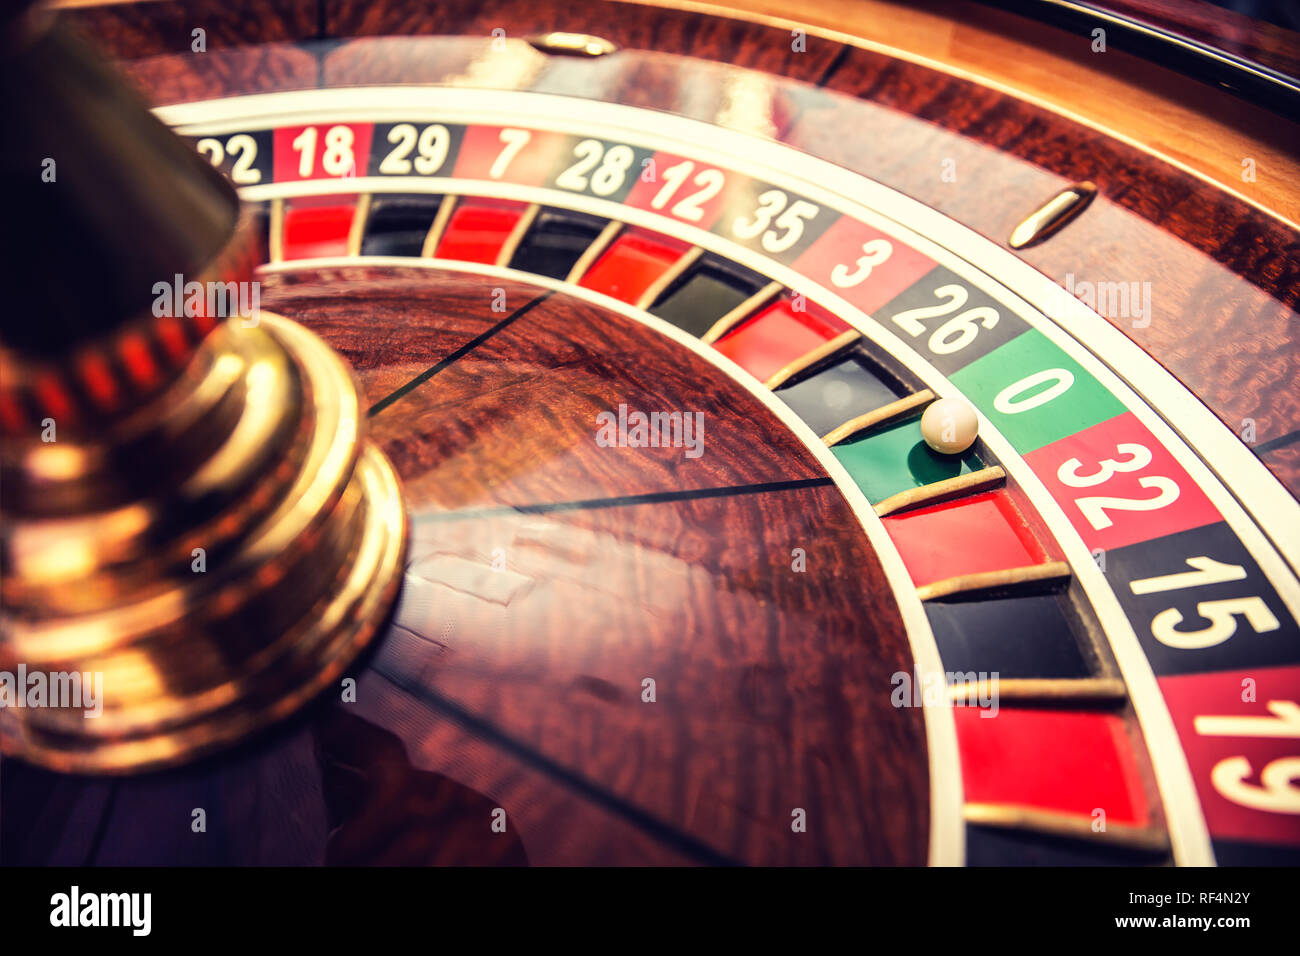 Roulette wheel in casino with ball on green position zero. Stock Photo